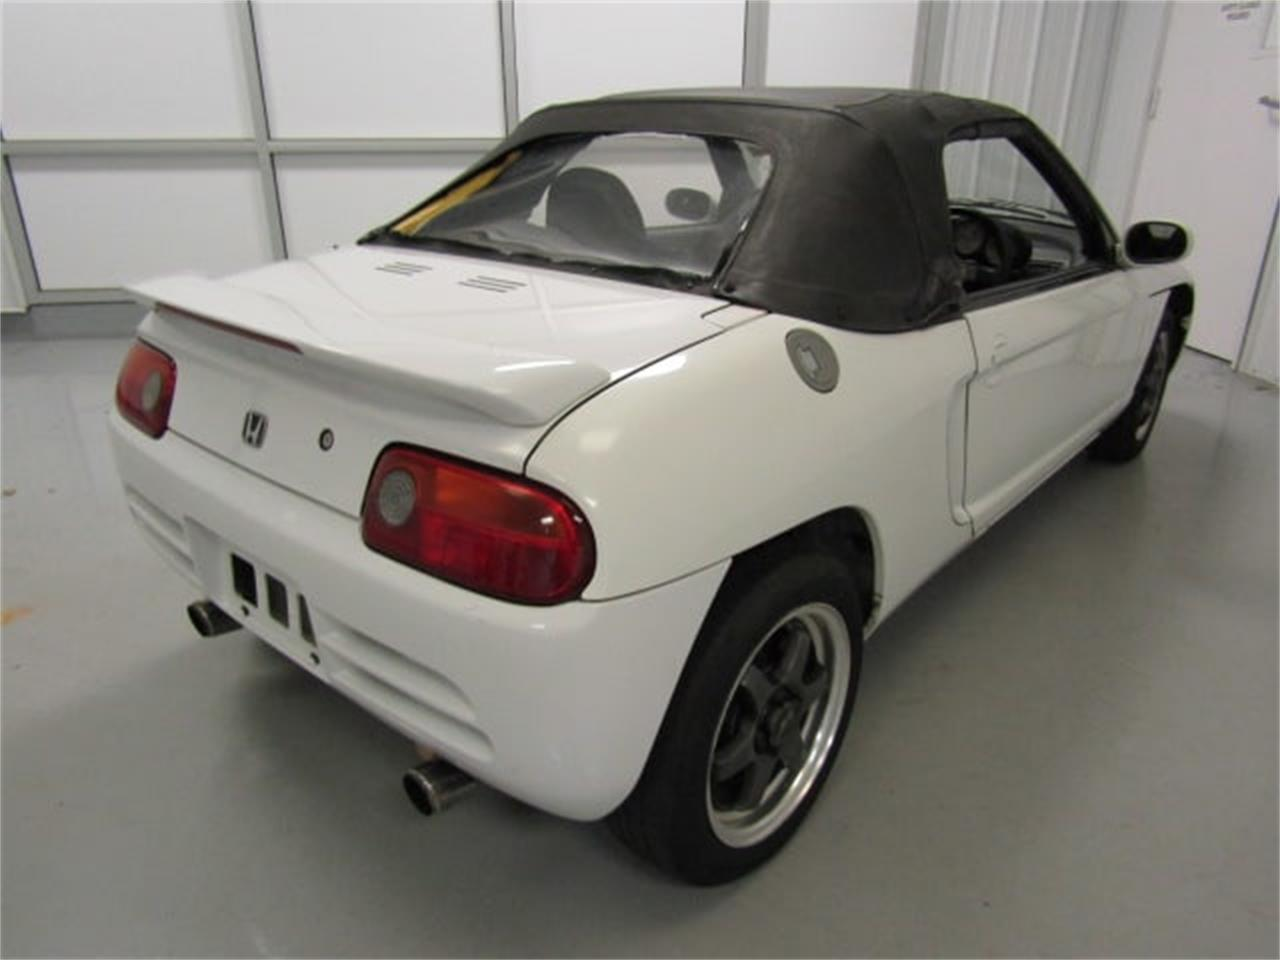 Large Picture of '91 Honda Beat - $6,900.00 Offered by Duncan Imports & Classic Cars - JL7S